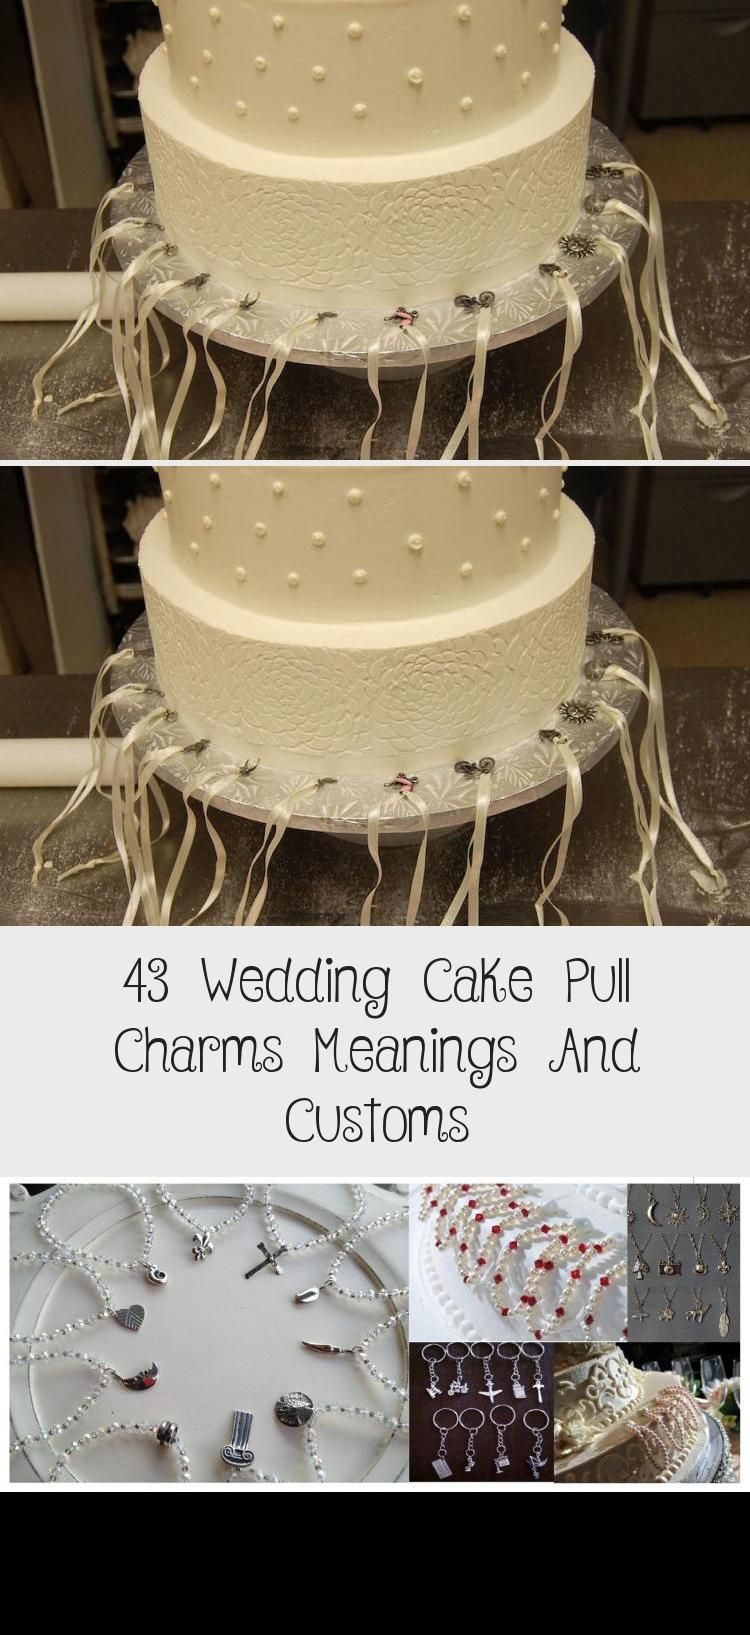 43 Wedding Cake Pull Charms Meanings And Customs Curious And Cozy Chocolateweddingcakesflavors In 2020 Wedding Cake Pull Charms Cake Pull Charms Wedding Cake Pulls